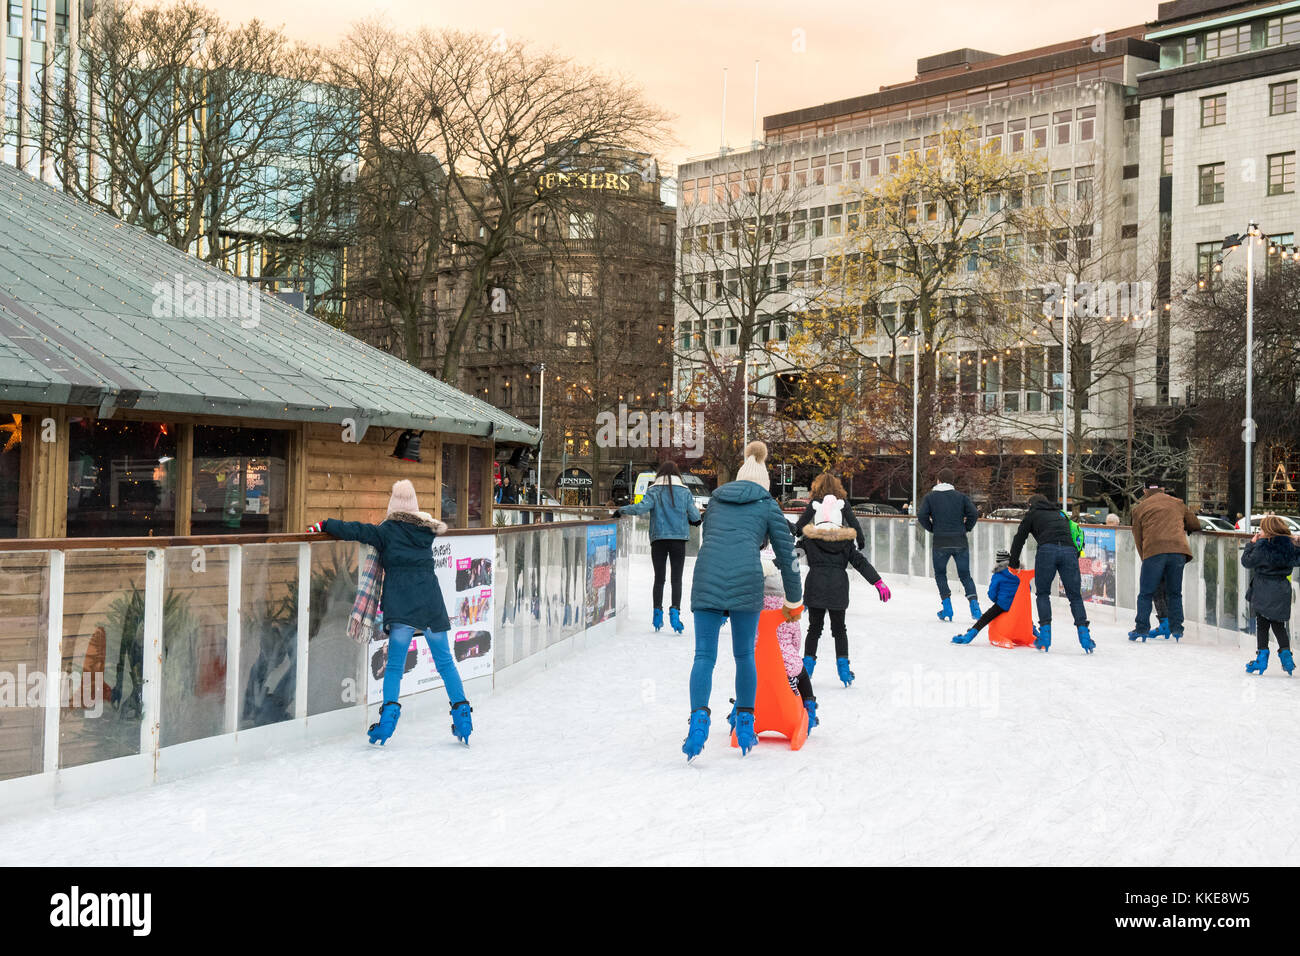 ice skating stockfotos ice skating bilder alamy. Black Bedroom Furniture Sets. Home Design Ideas